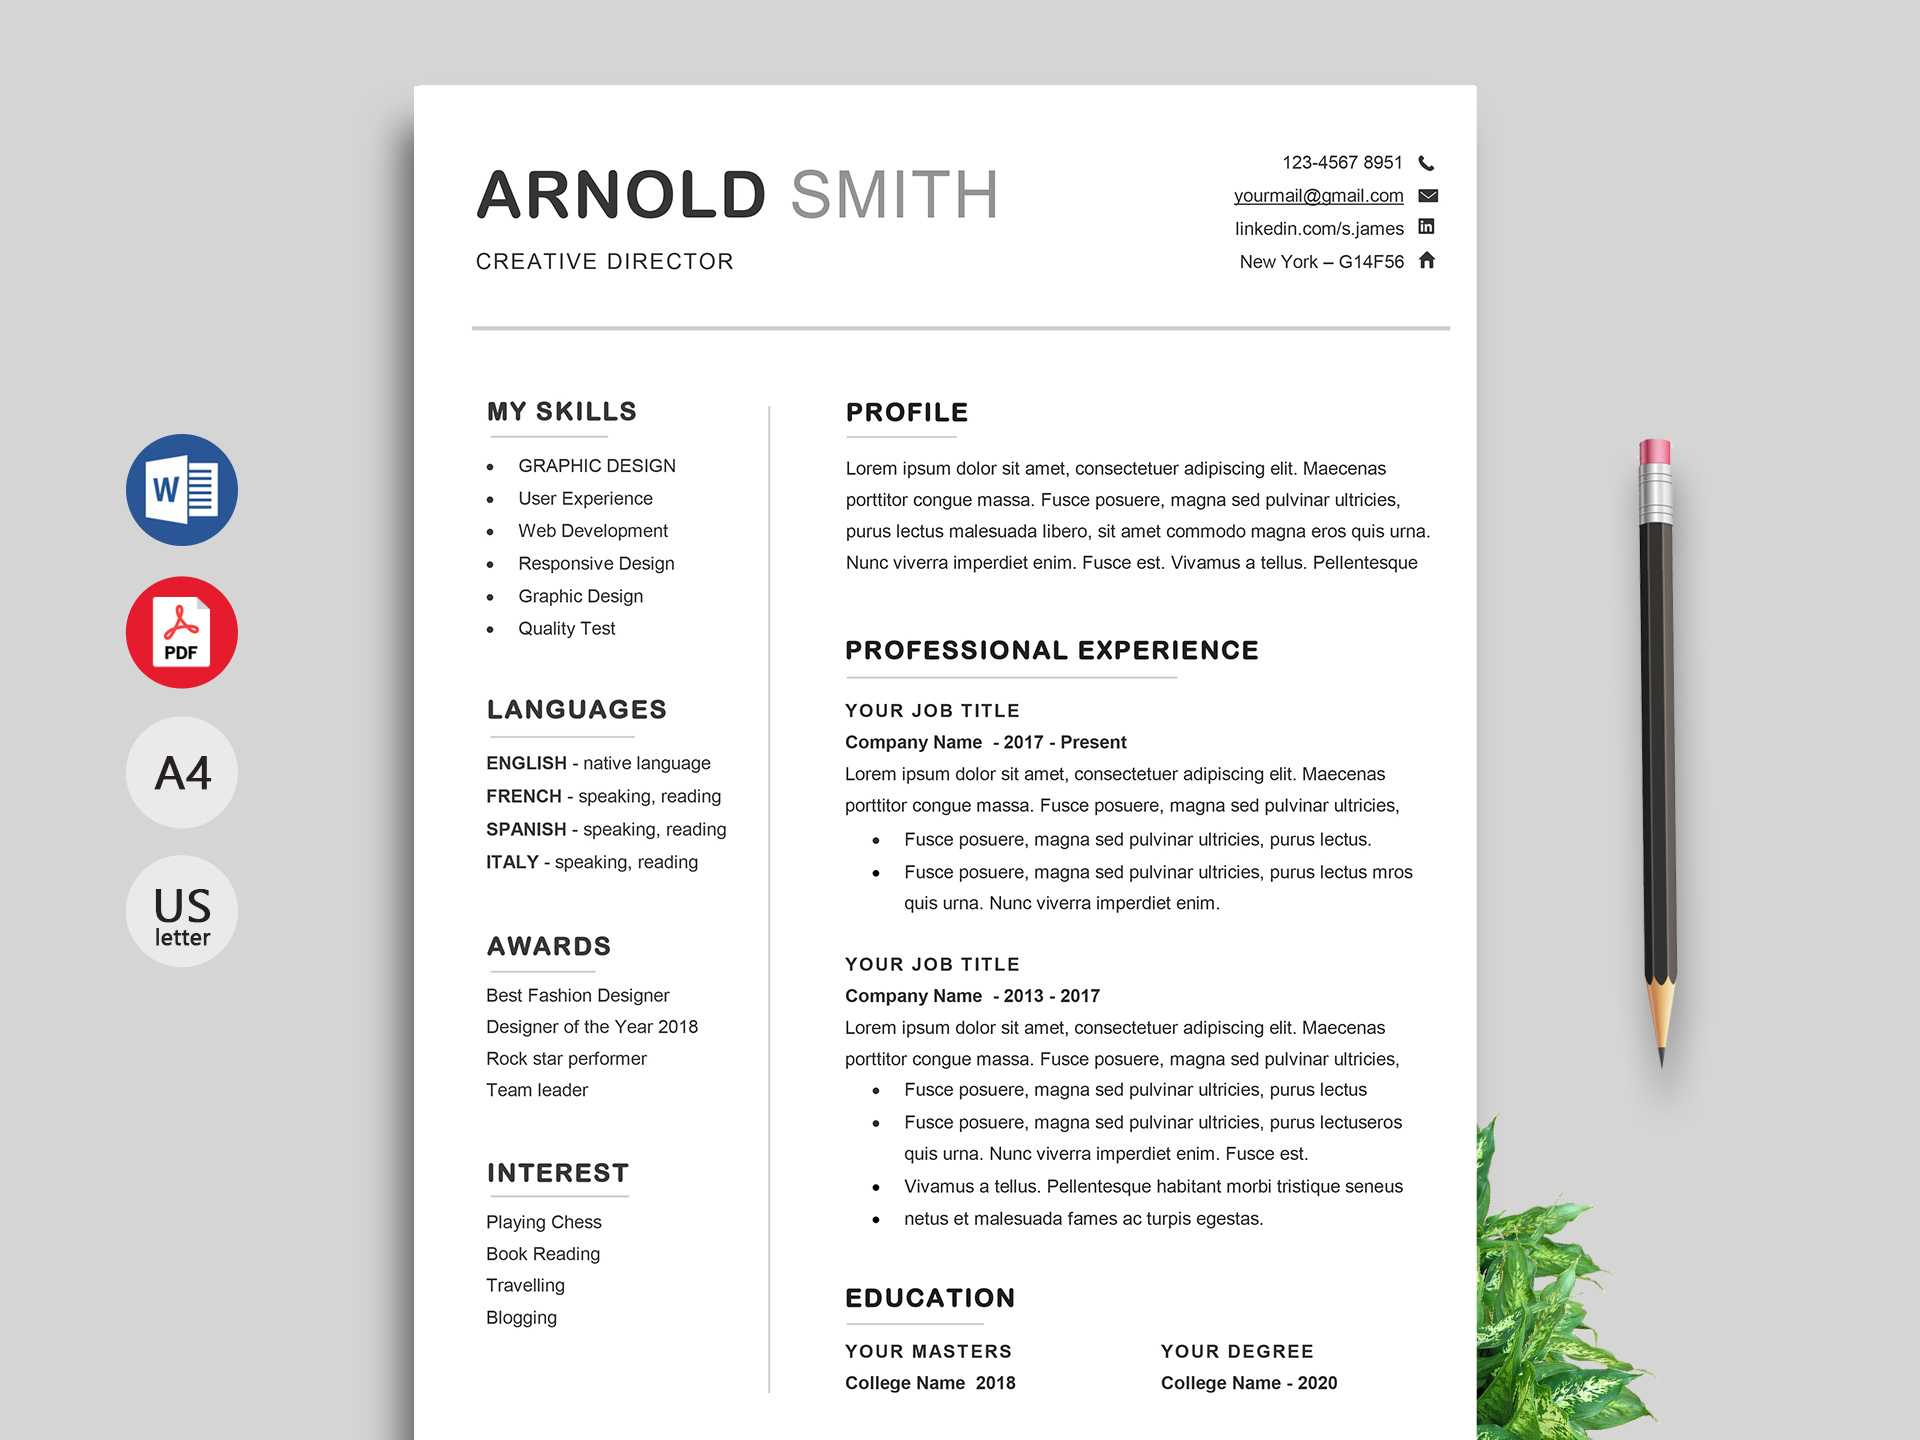 Ace Classic Cv Template Word - Resumekraft Inside Free Downloadable Resume Templates For Word